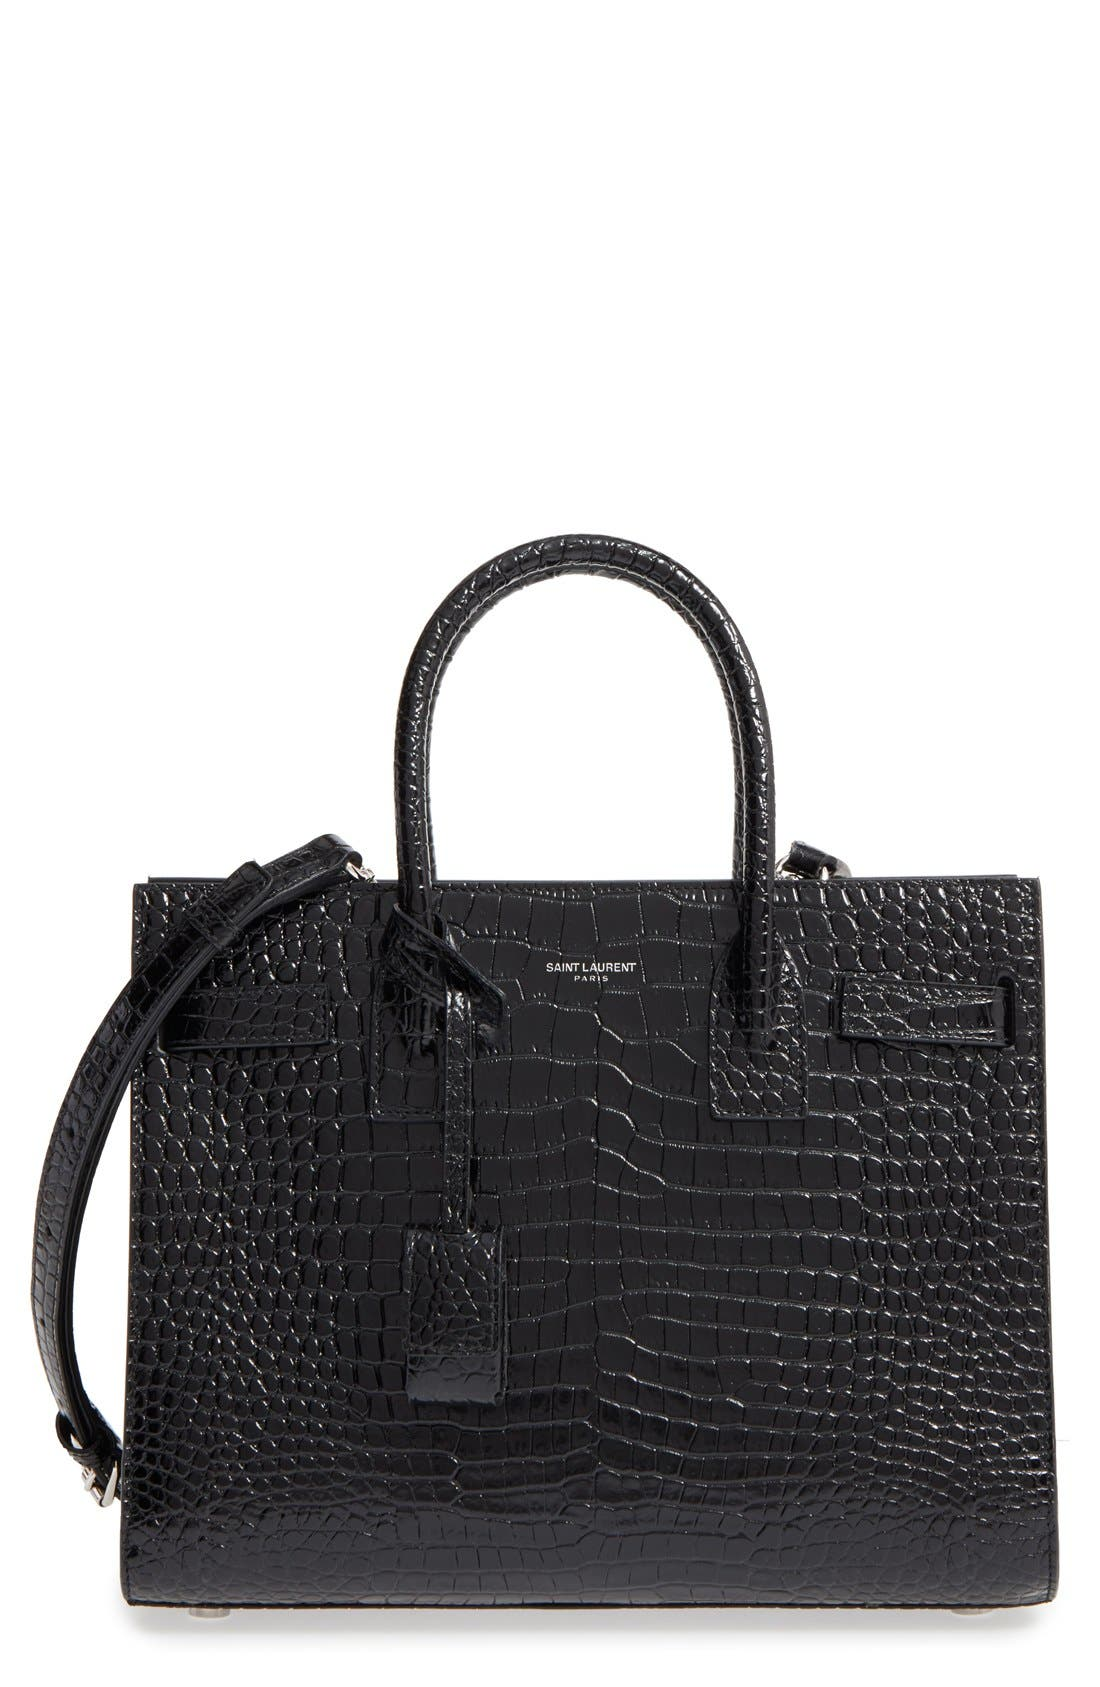 Main Image - Saint Laurent Baby Sac de Jour Croc Embossed Calfskin Leather Tote